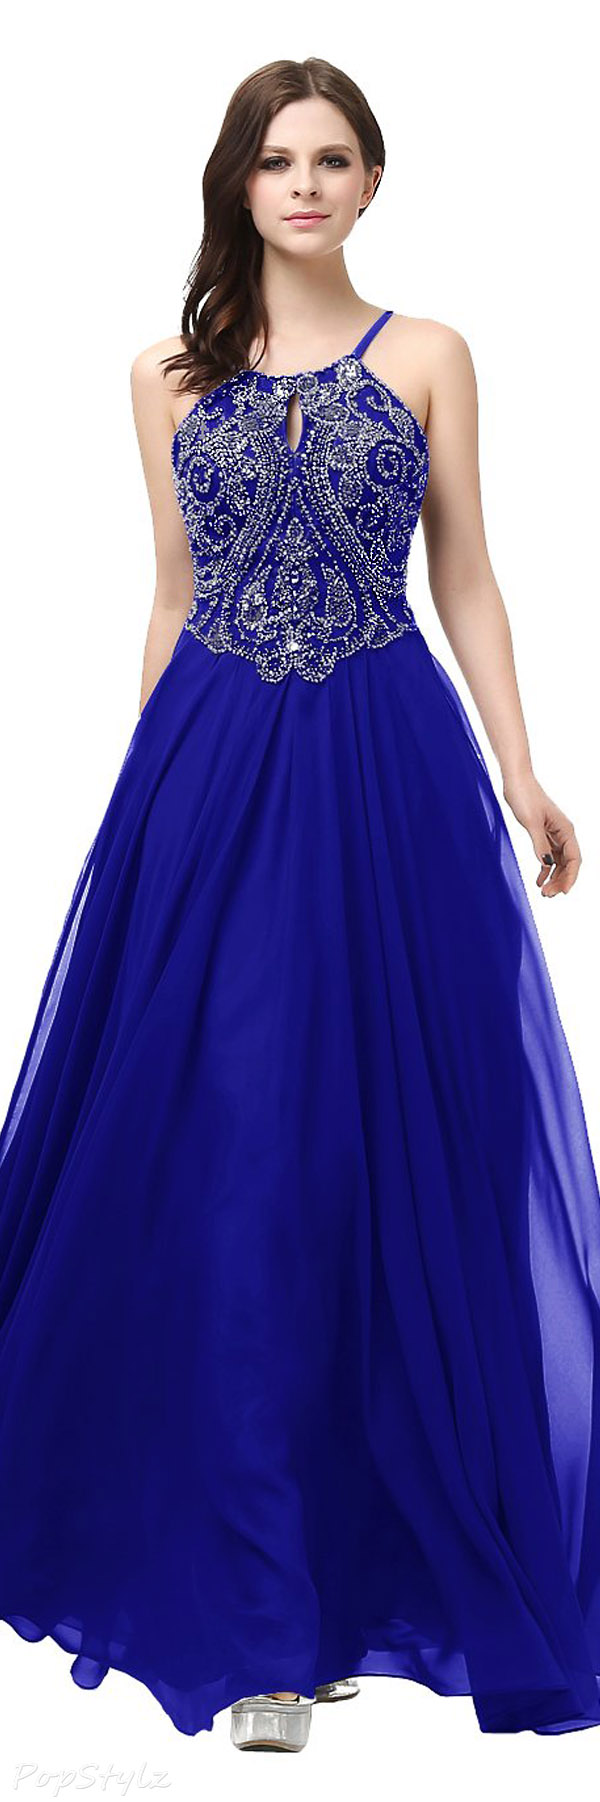 Diyouth Elegant Beaded Halter Evening Gown